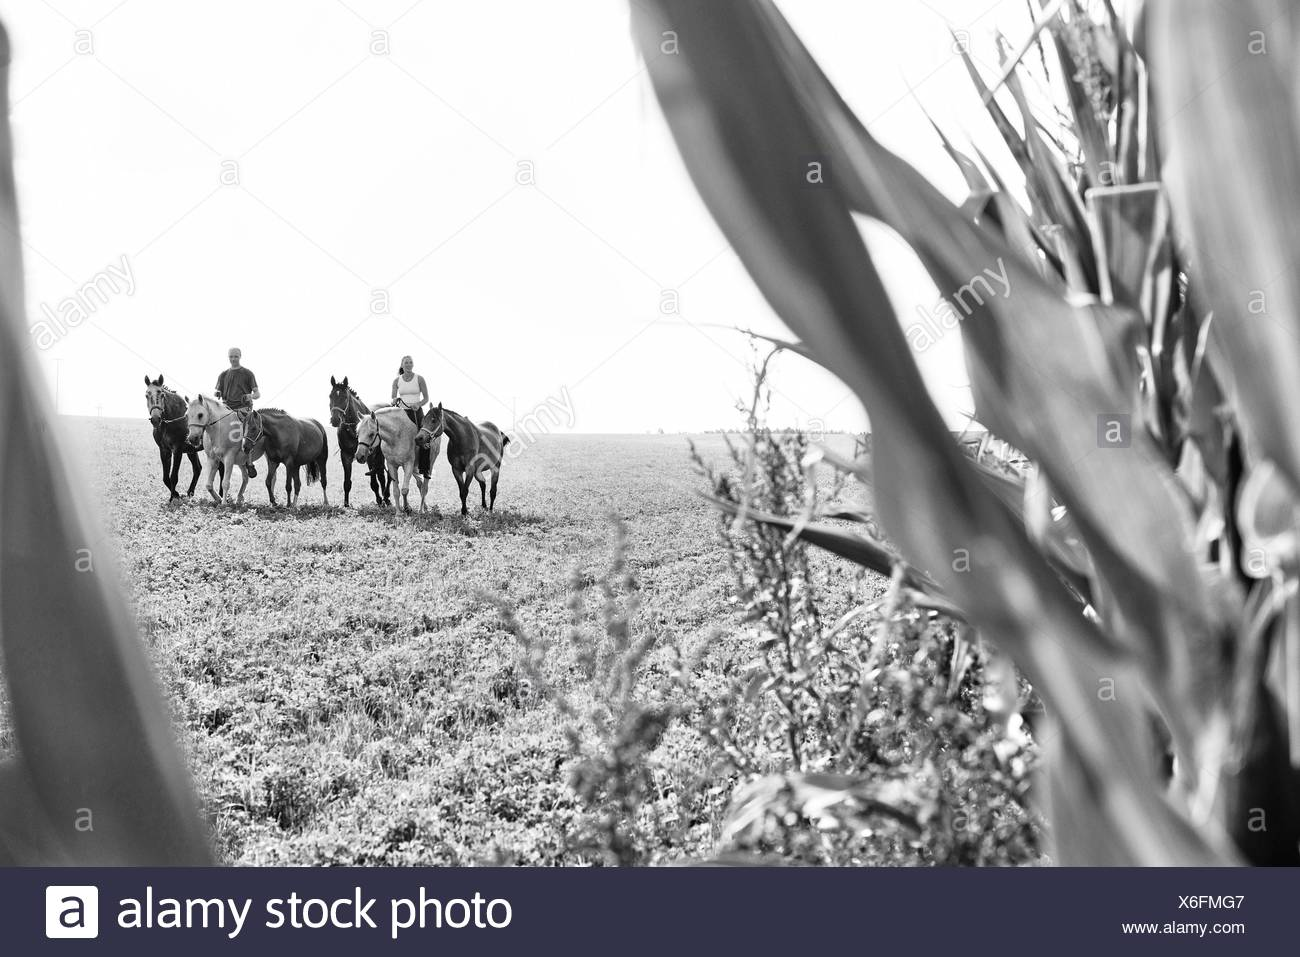 B&W image of man and woman riding and leading six horses in field - Stock Image